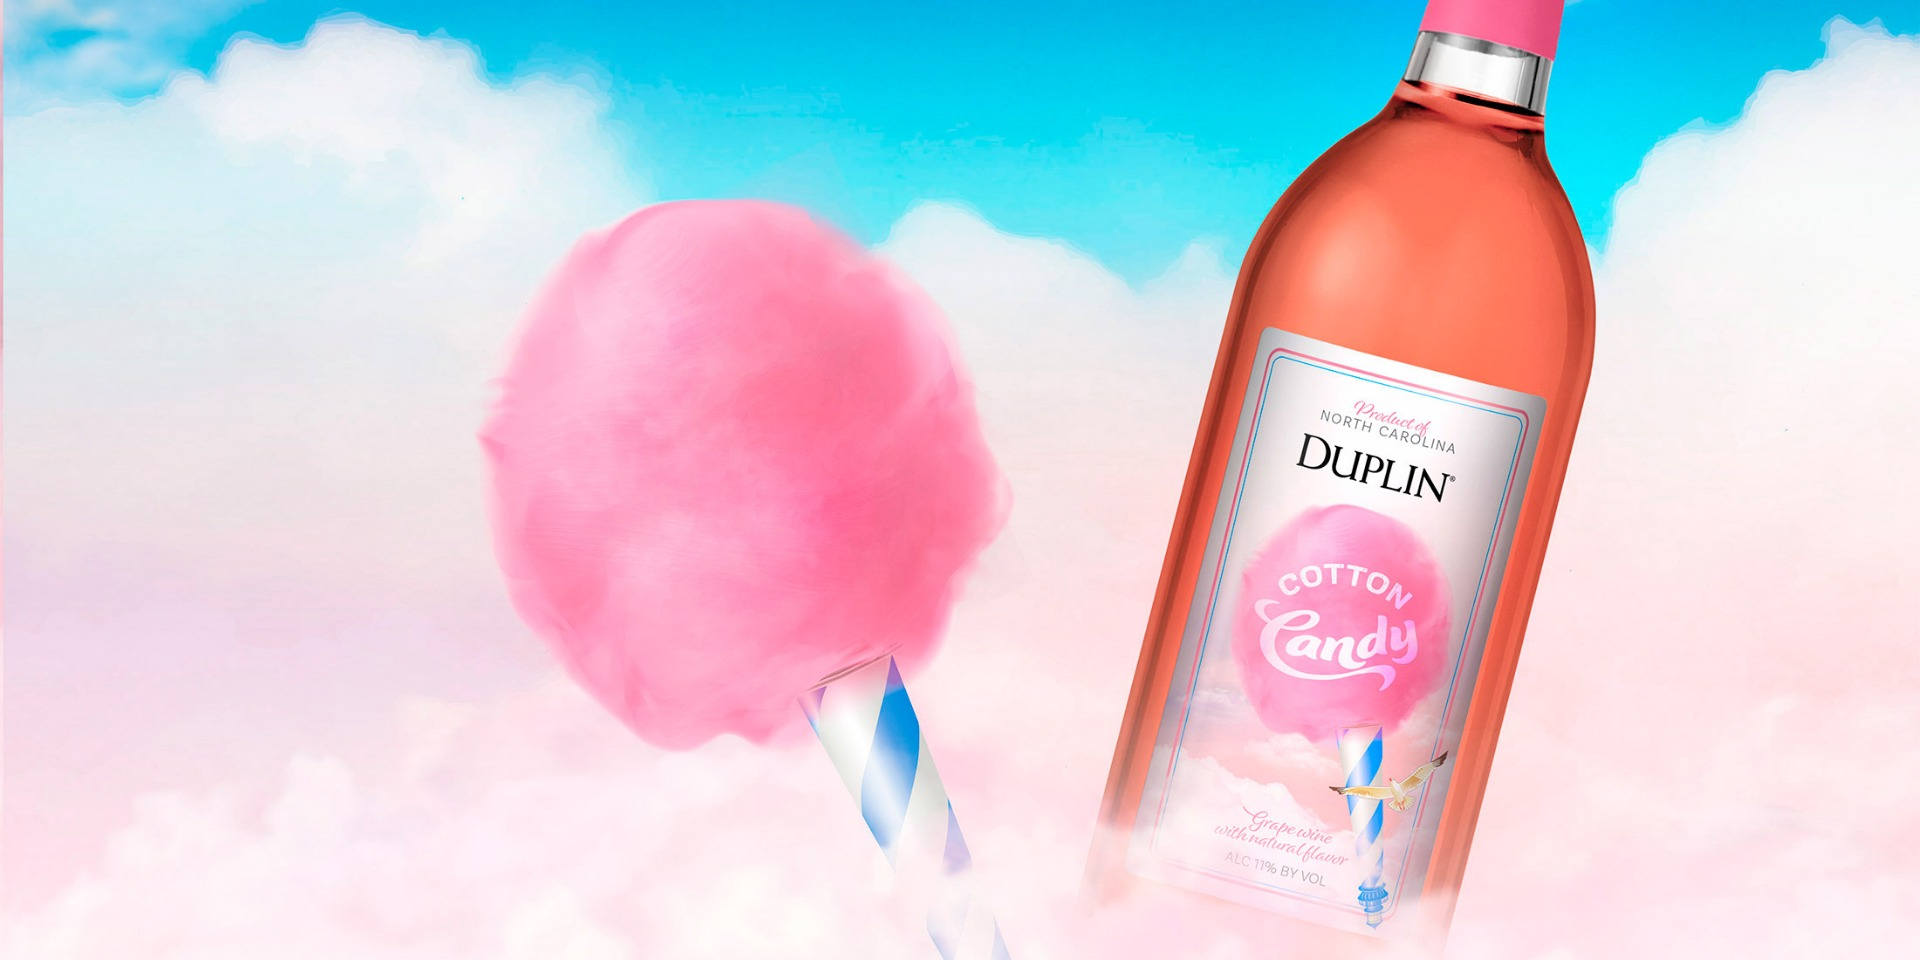 Duplin Cotton Candy wine's hints of berry and vanilla capture everything wonderful about pink cotton candy.